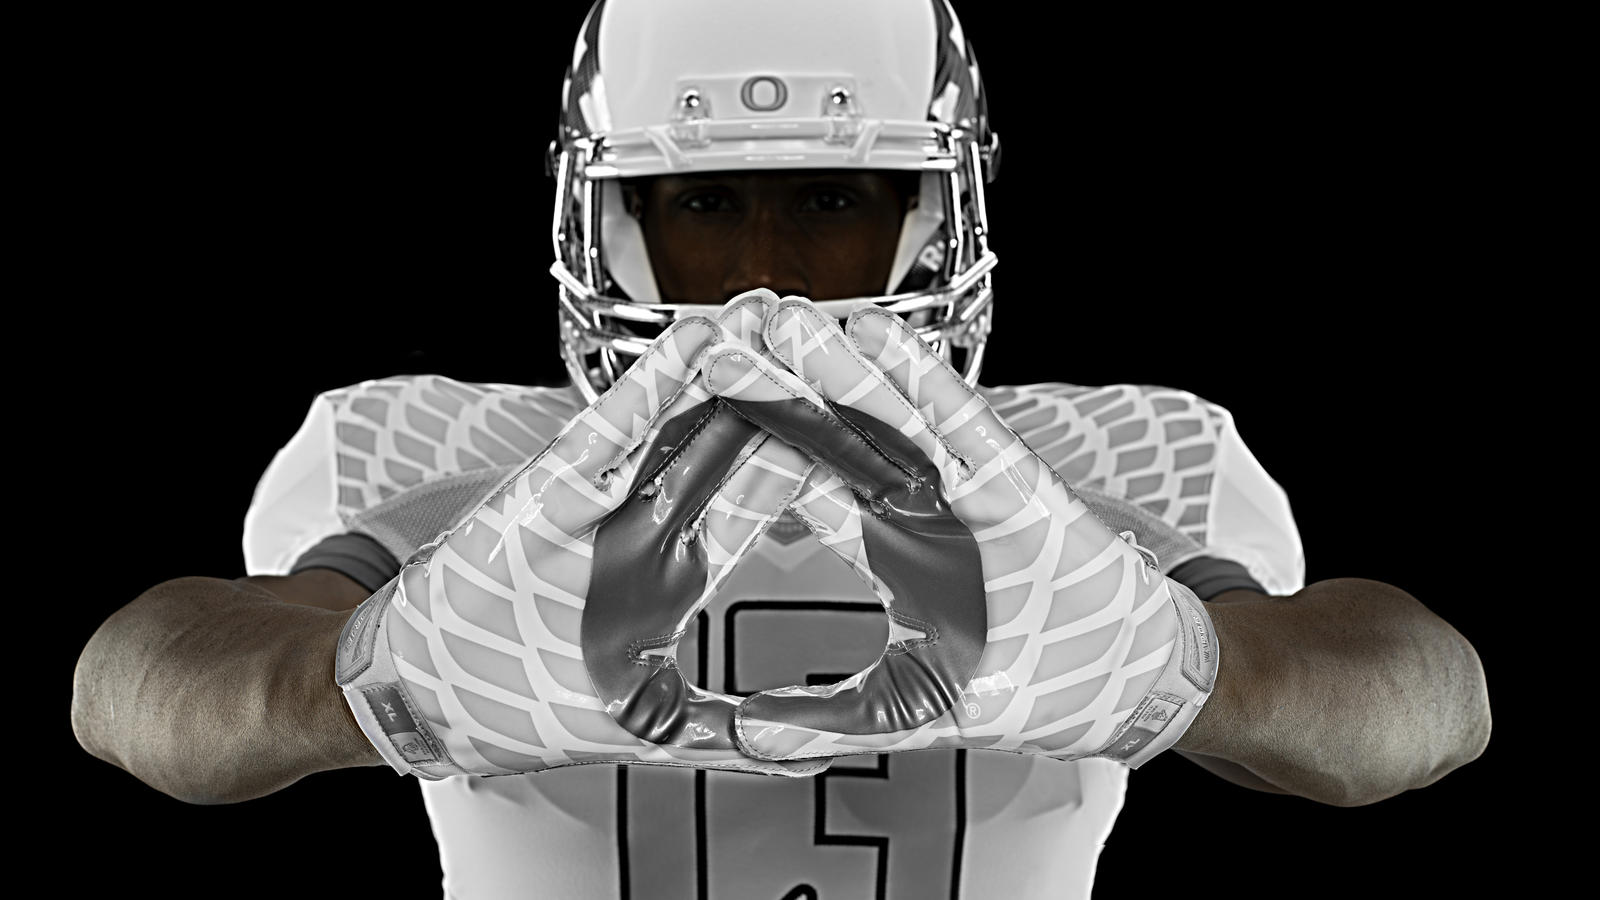 nike-football-uniform-uofo-home-glovers